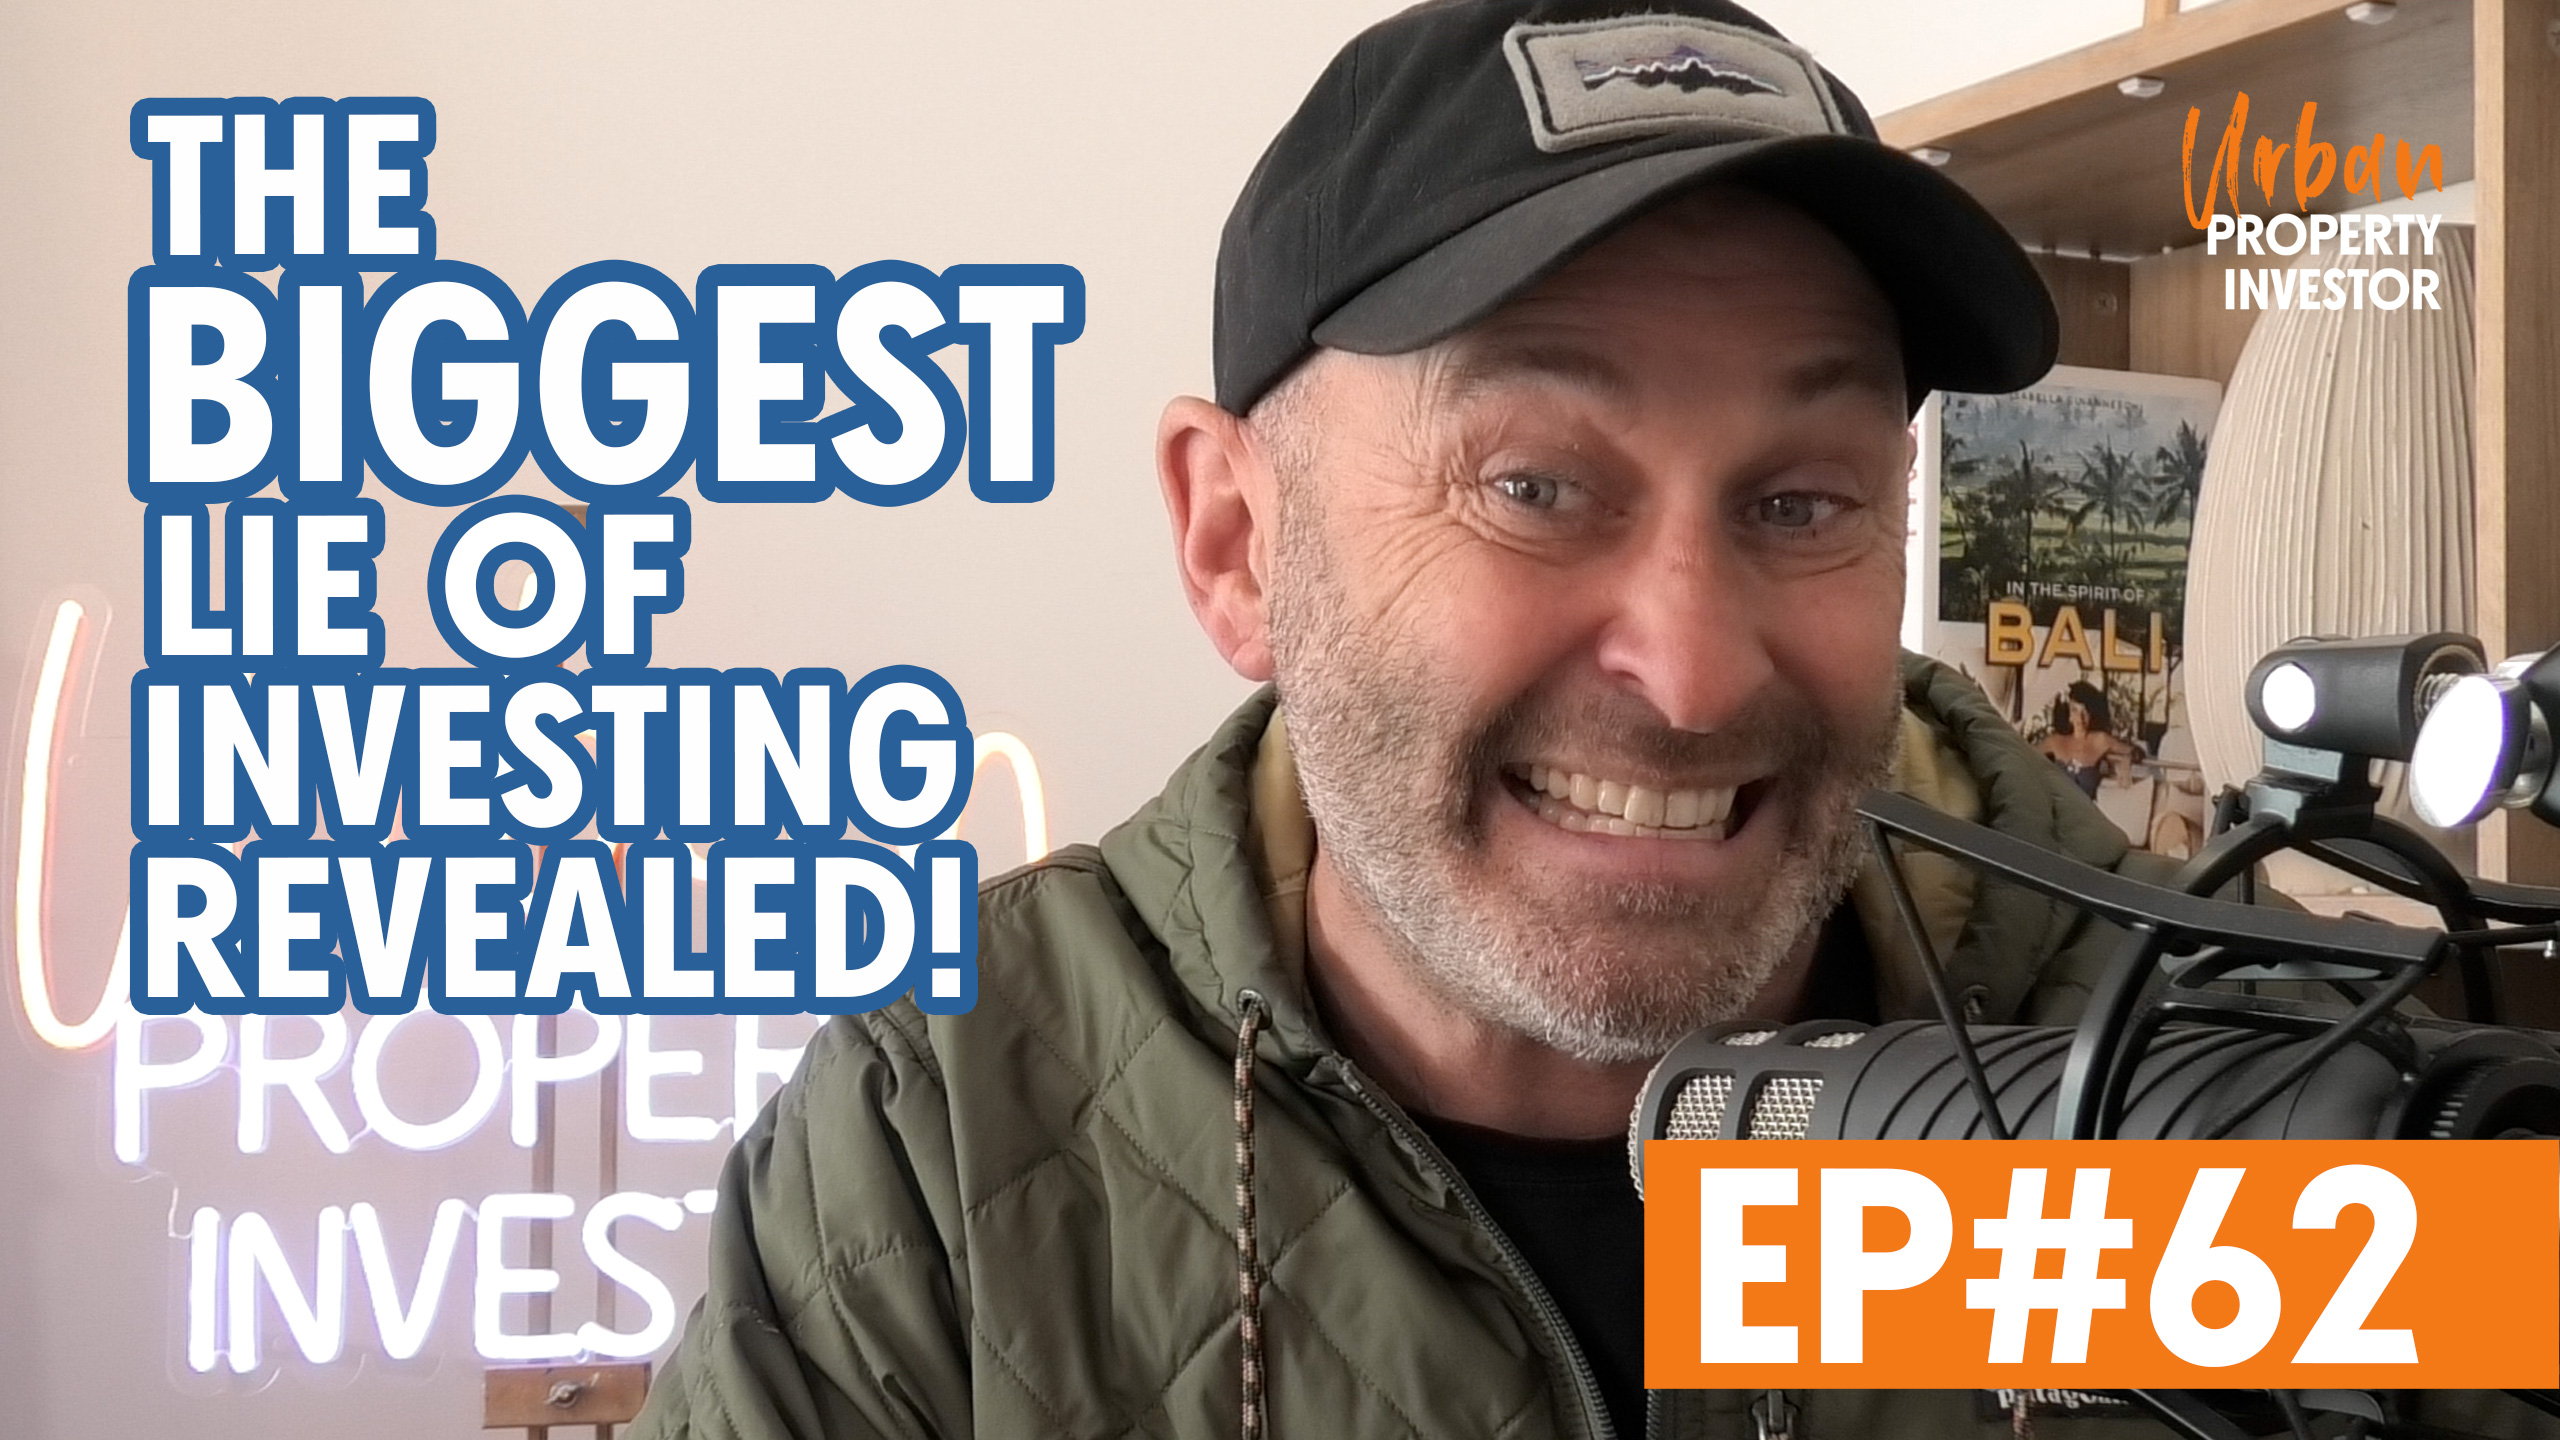 The Biggest Lie of Investing Revealed